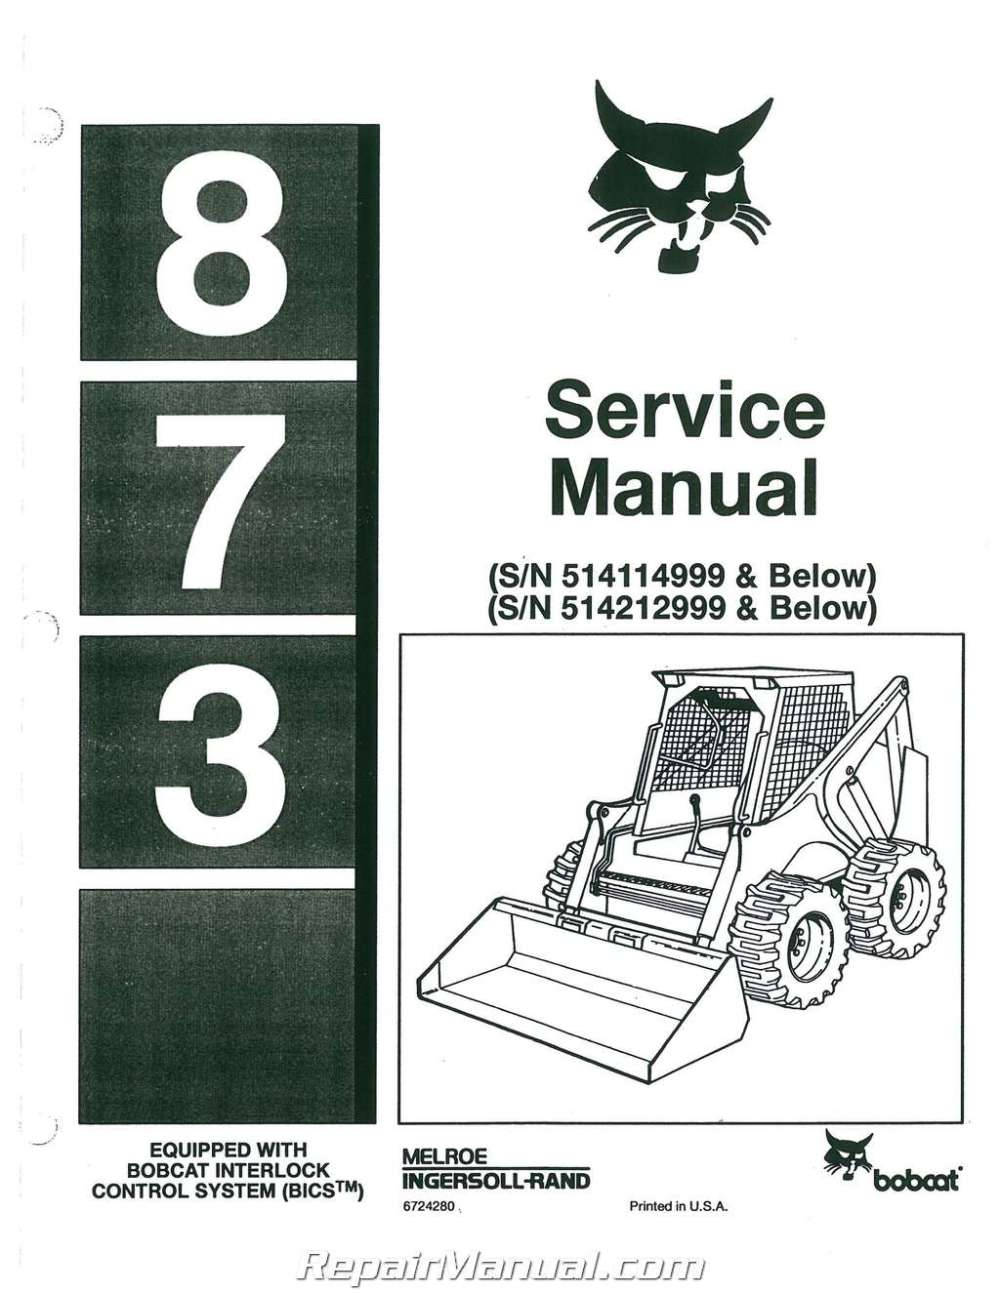 medium resolution of bobcat 873 loader service repair manual download sellfy revision number february date revision route attentionaffecting immediately high flow 743ds follow